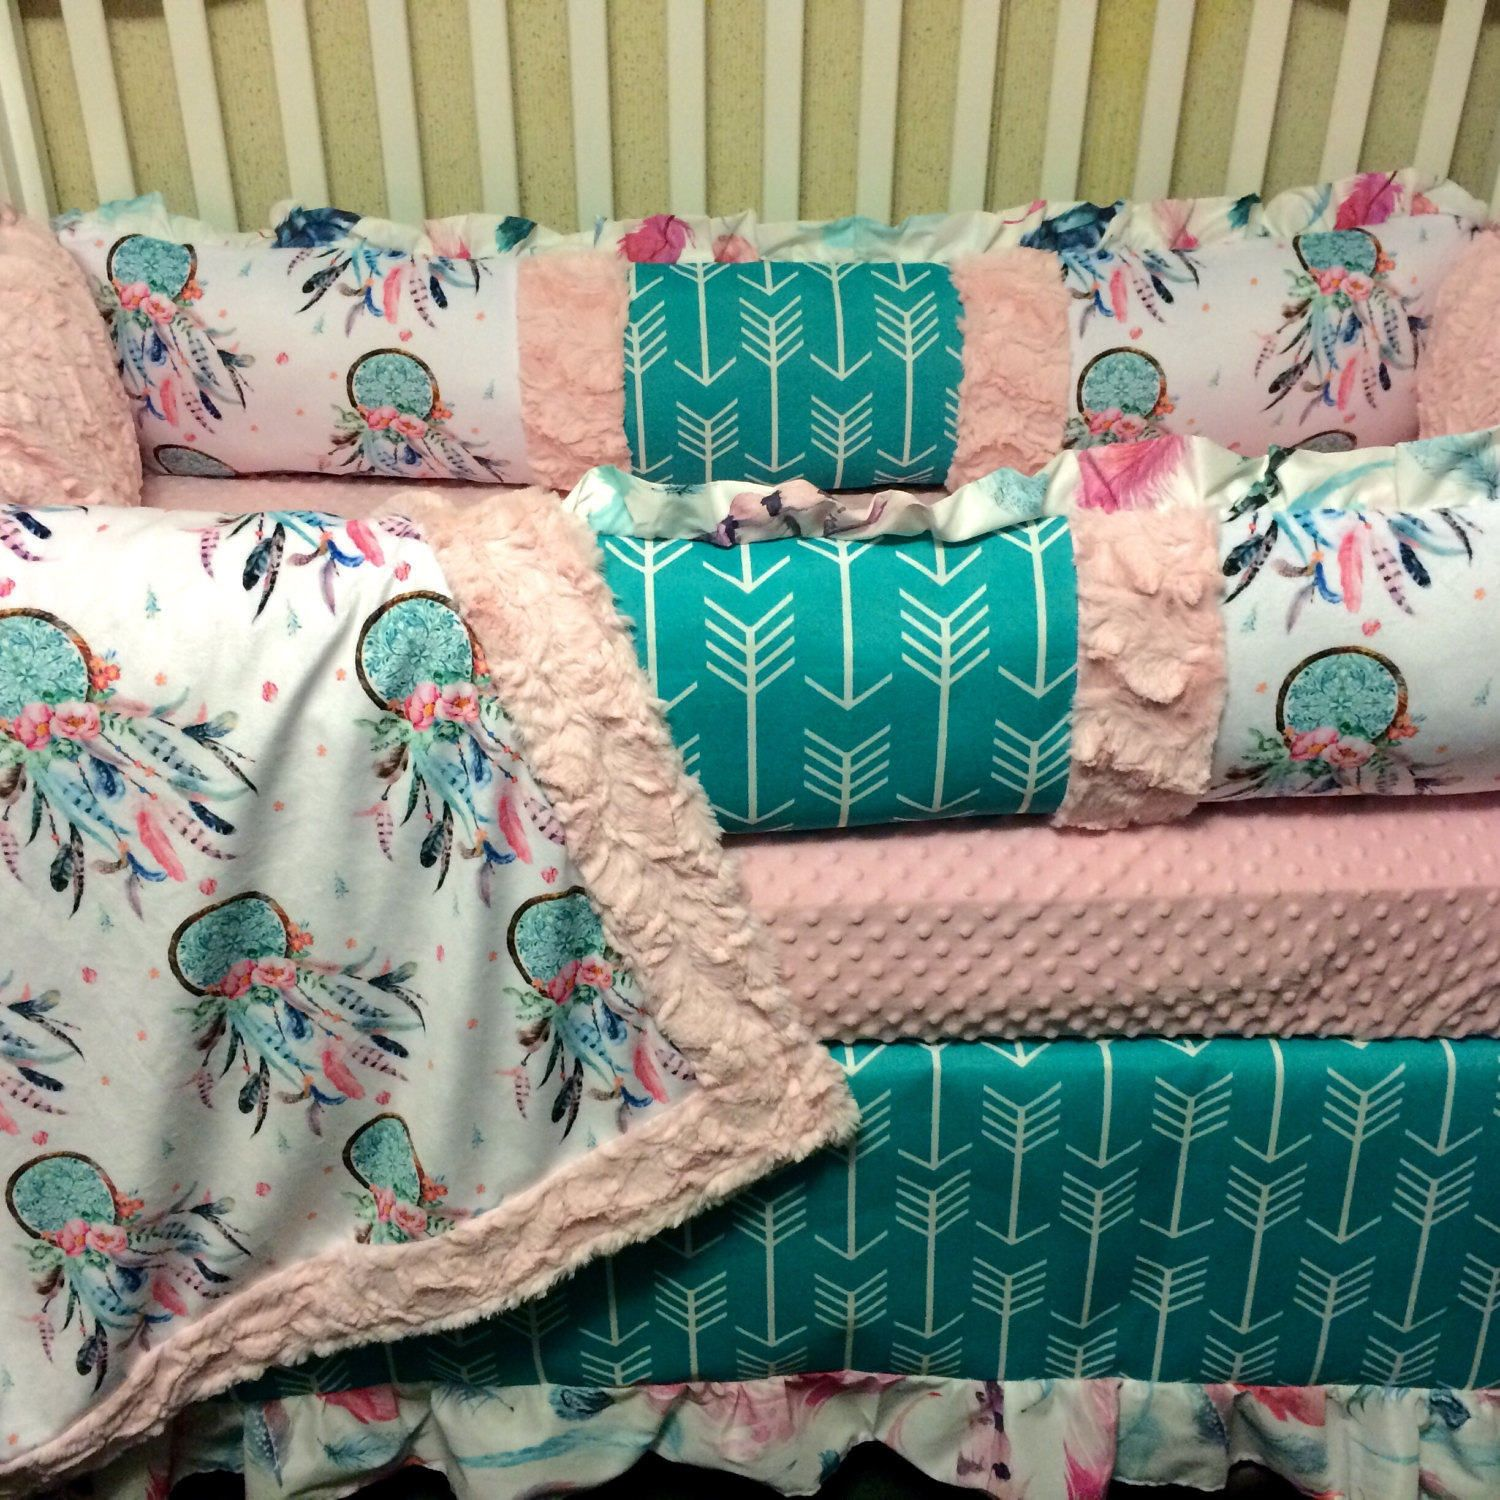 Dream Catcher Crib Bedding Unique Dream Catcher And Arrows Custom Baby Bedding With Pink And Teal Design Decoration